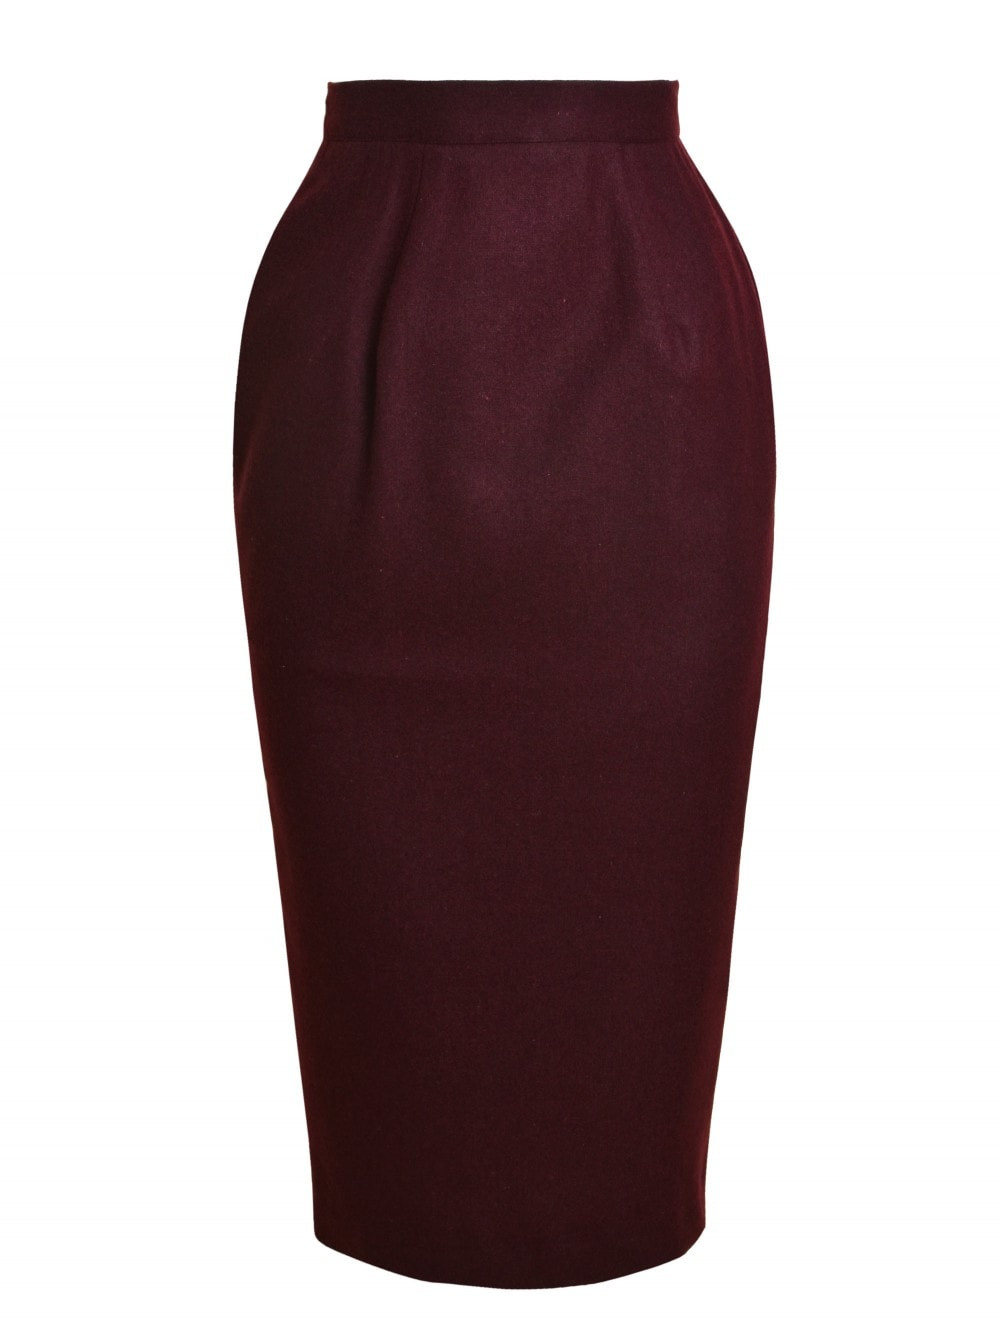 679c239d2 Pencil Skirt Lined Burgundy Flannel from Vivien of Holloway